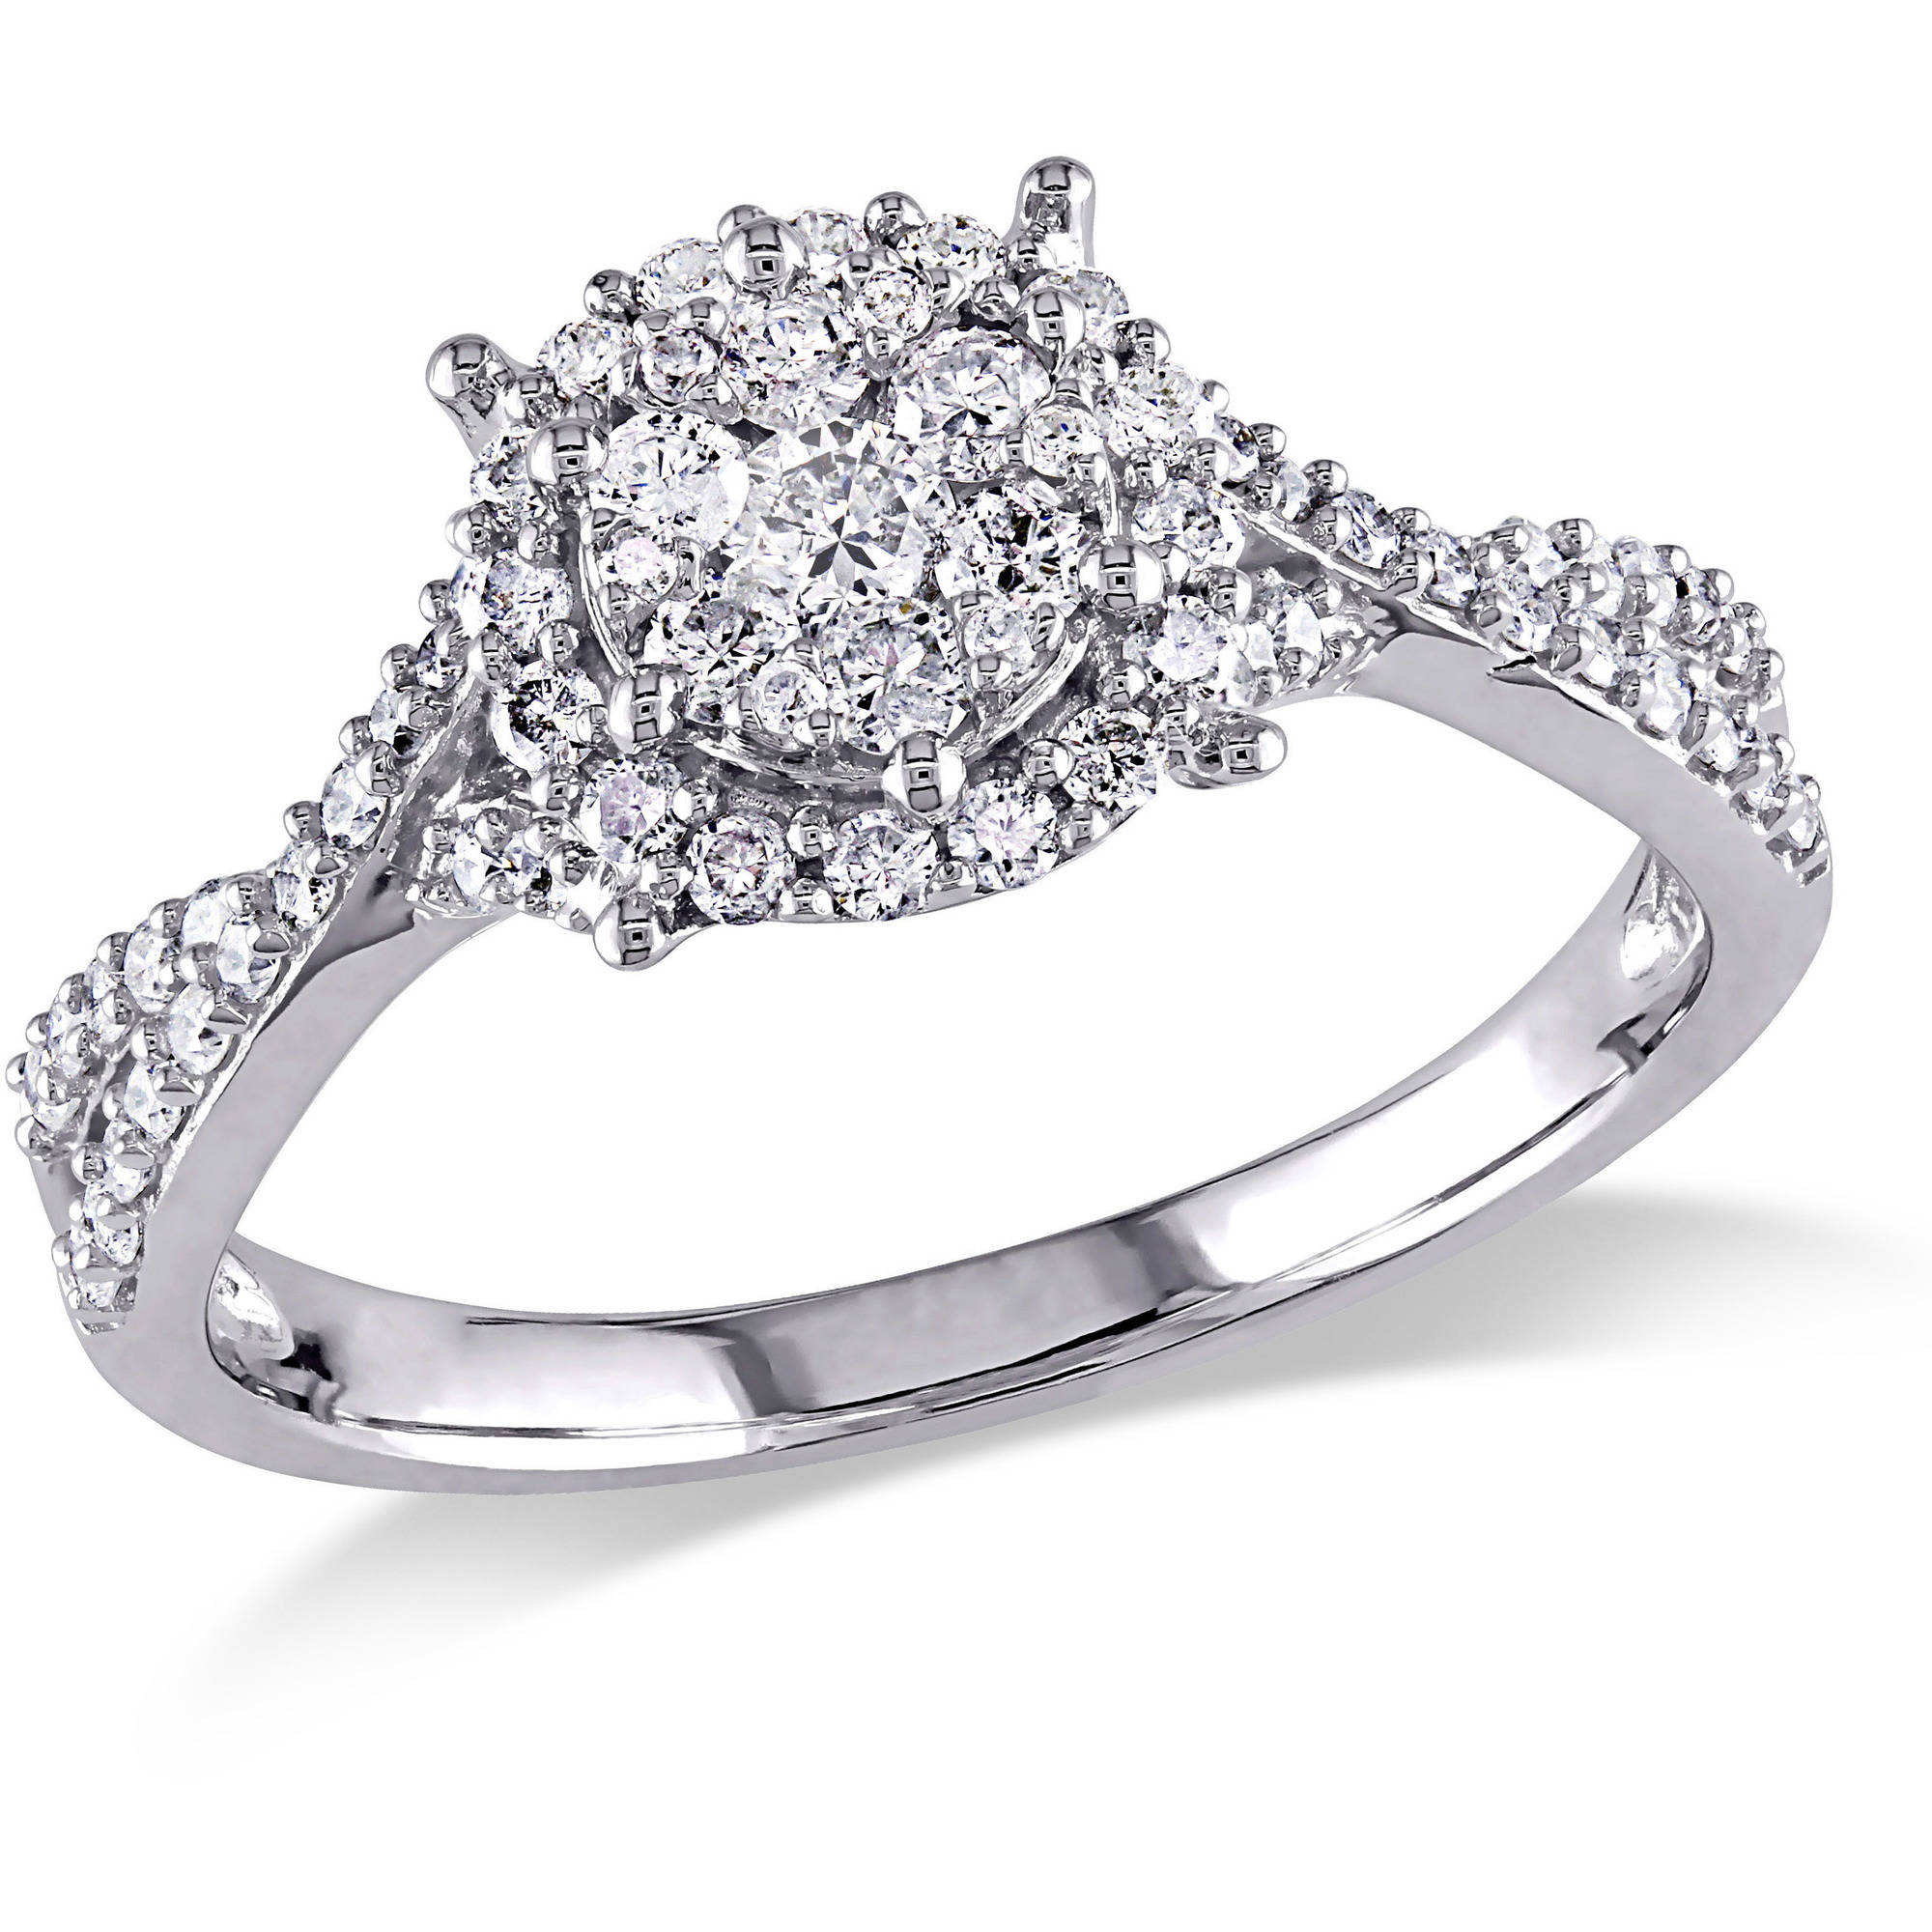 Miabella 1 2 Carat T.W. Diamond 10kt White Gold Engagement Ring by Generic